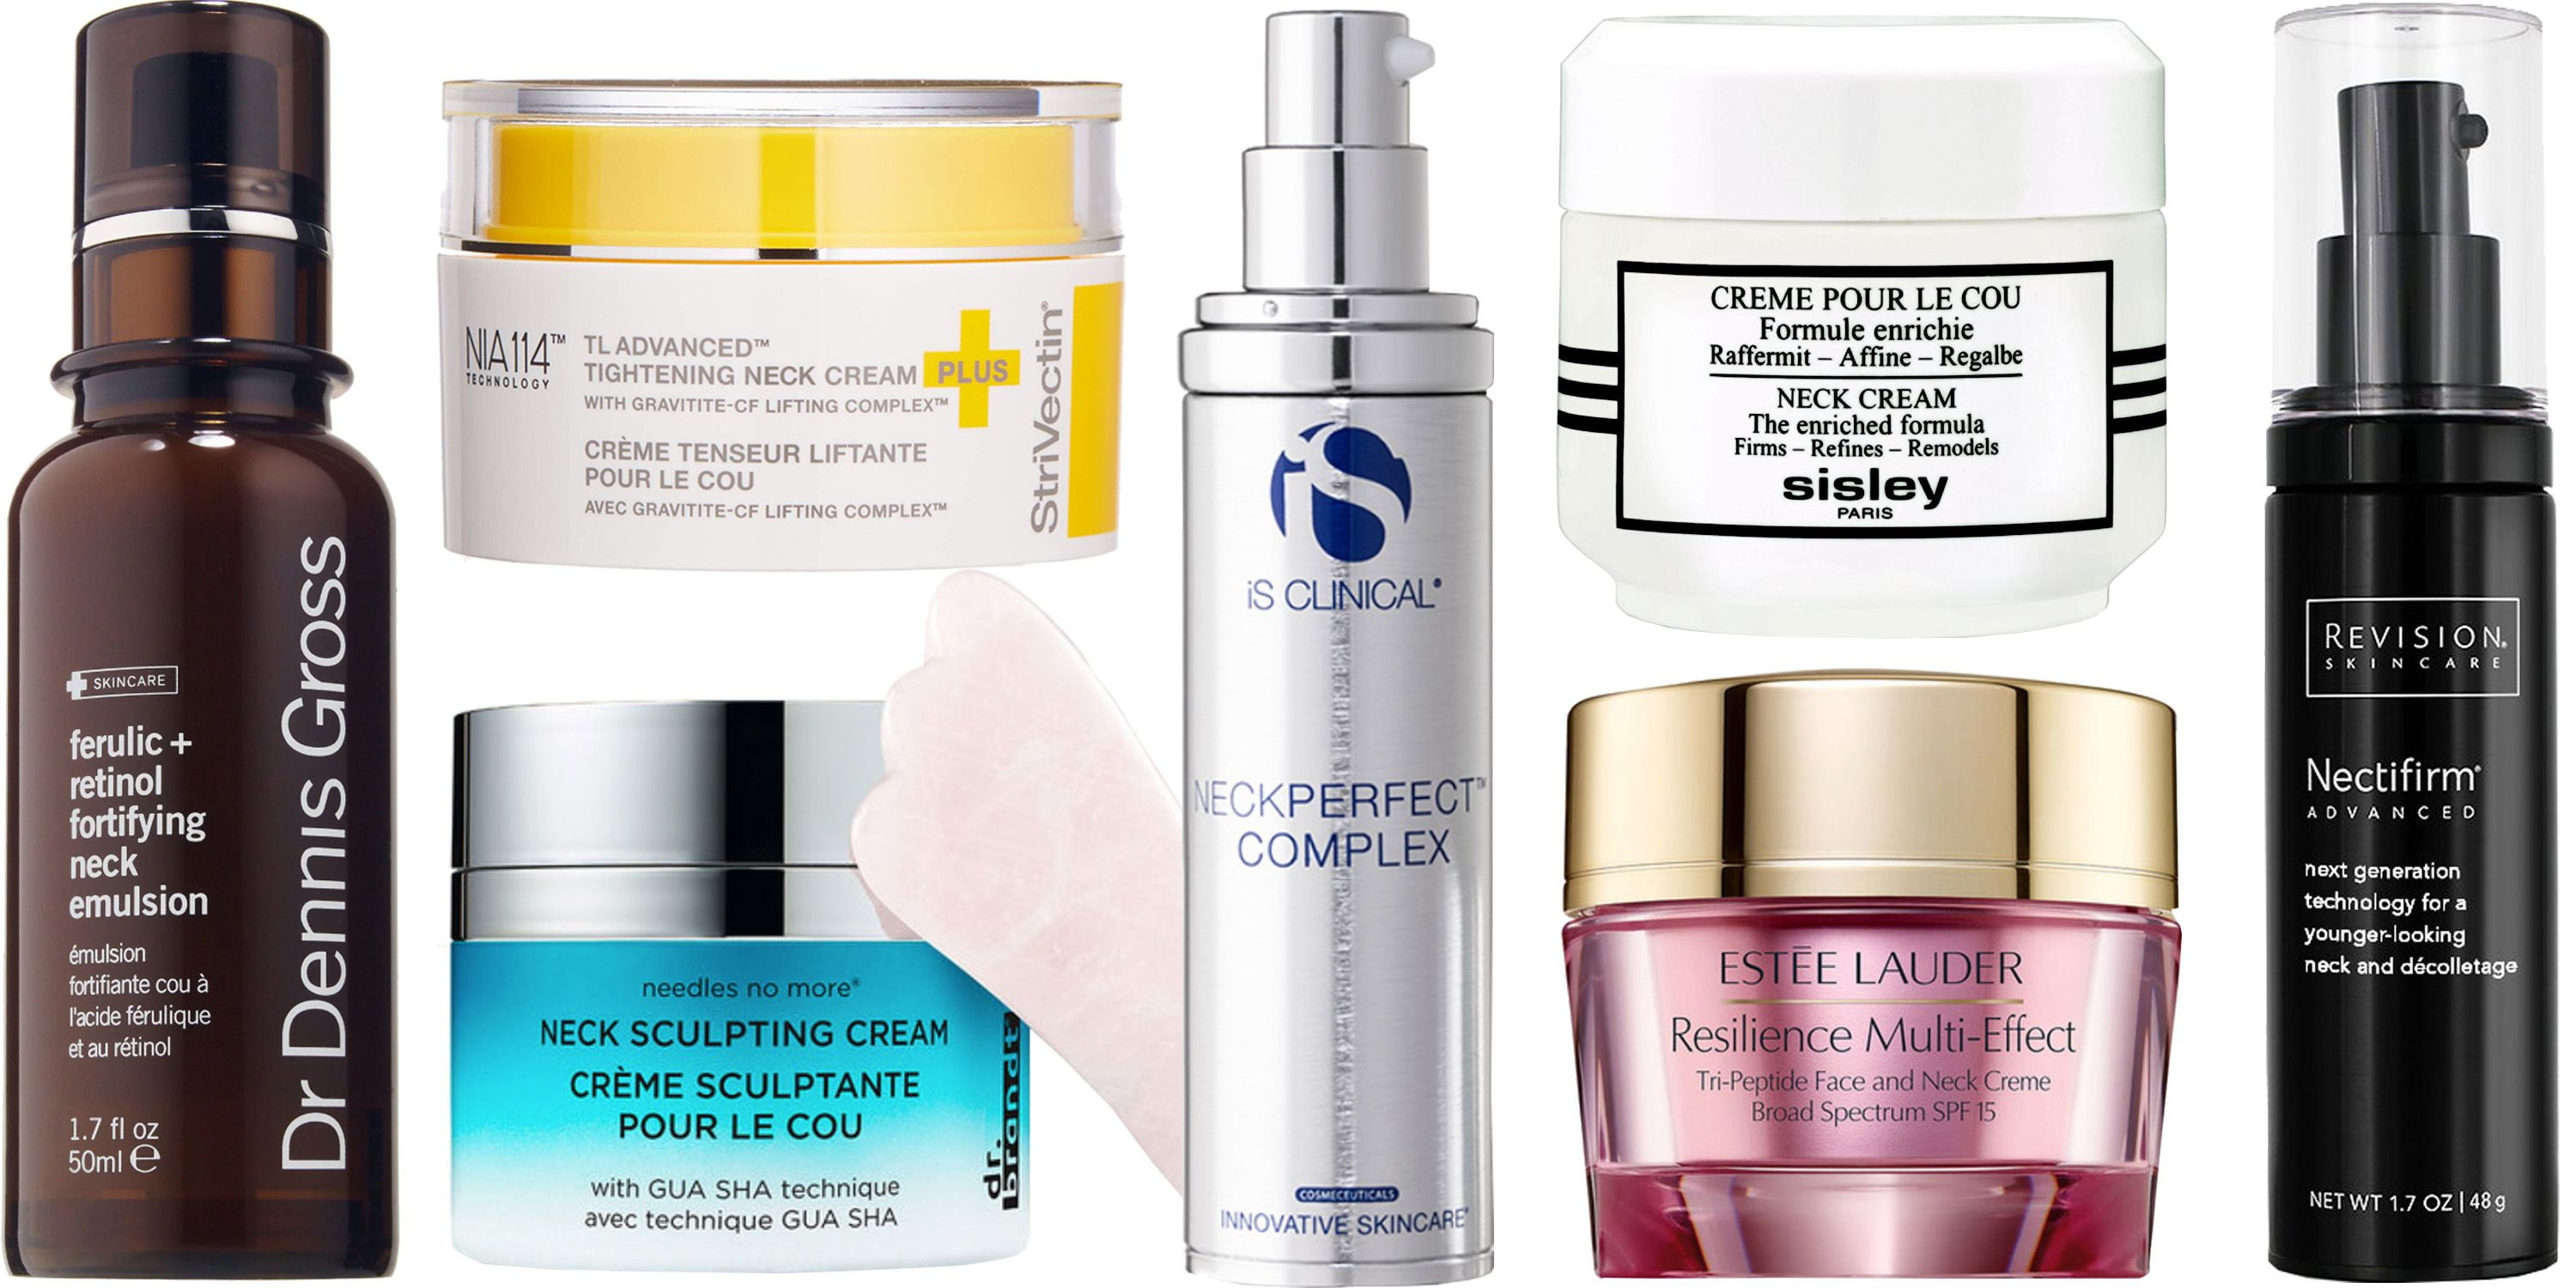 The 10 Best Anti-Aging Neck Creams